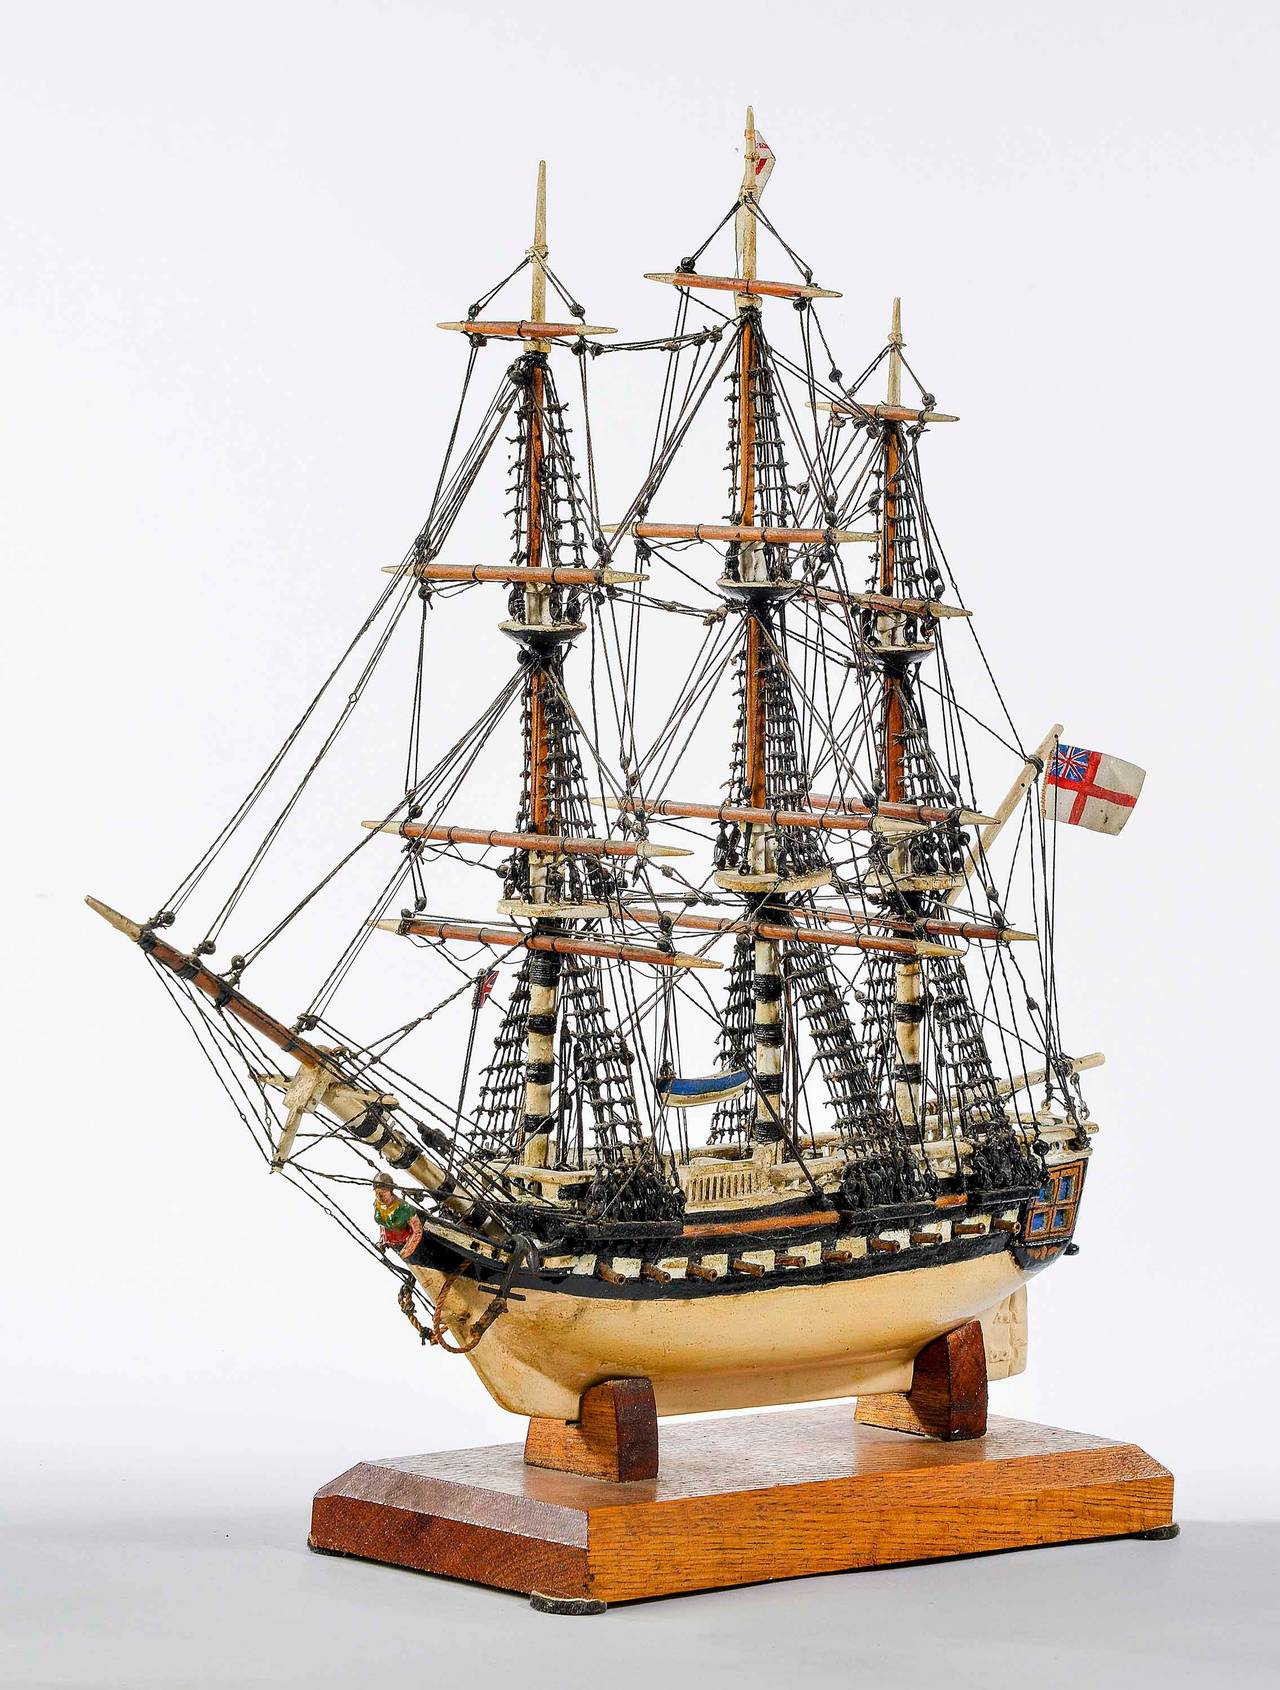 A fine ship model with particularly intricate rigging, which is original. Paintwork somewhat tired but an interesting complex model on an oak plinth.